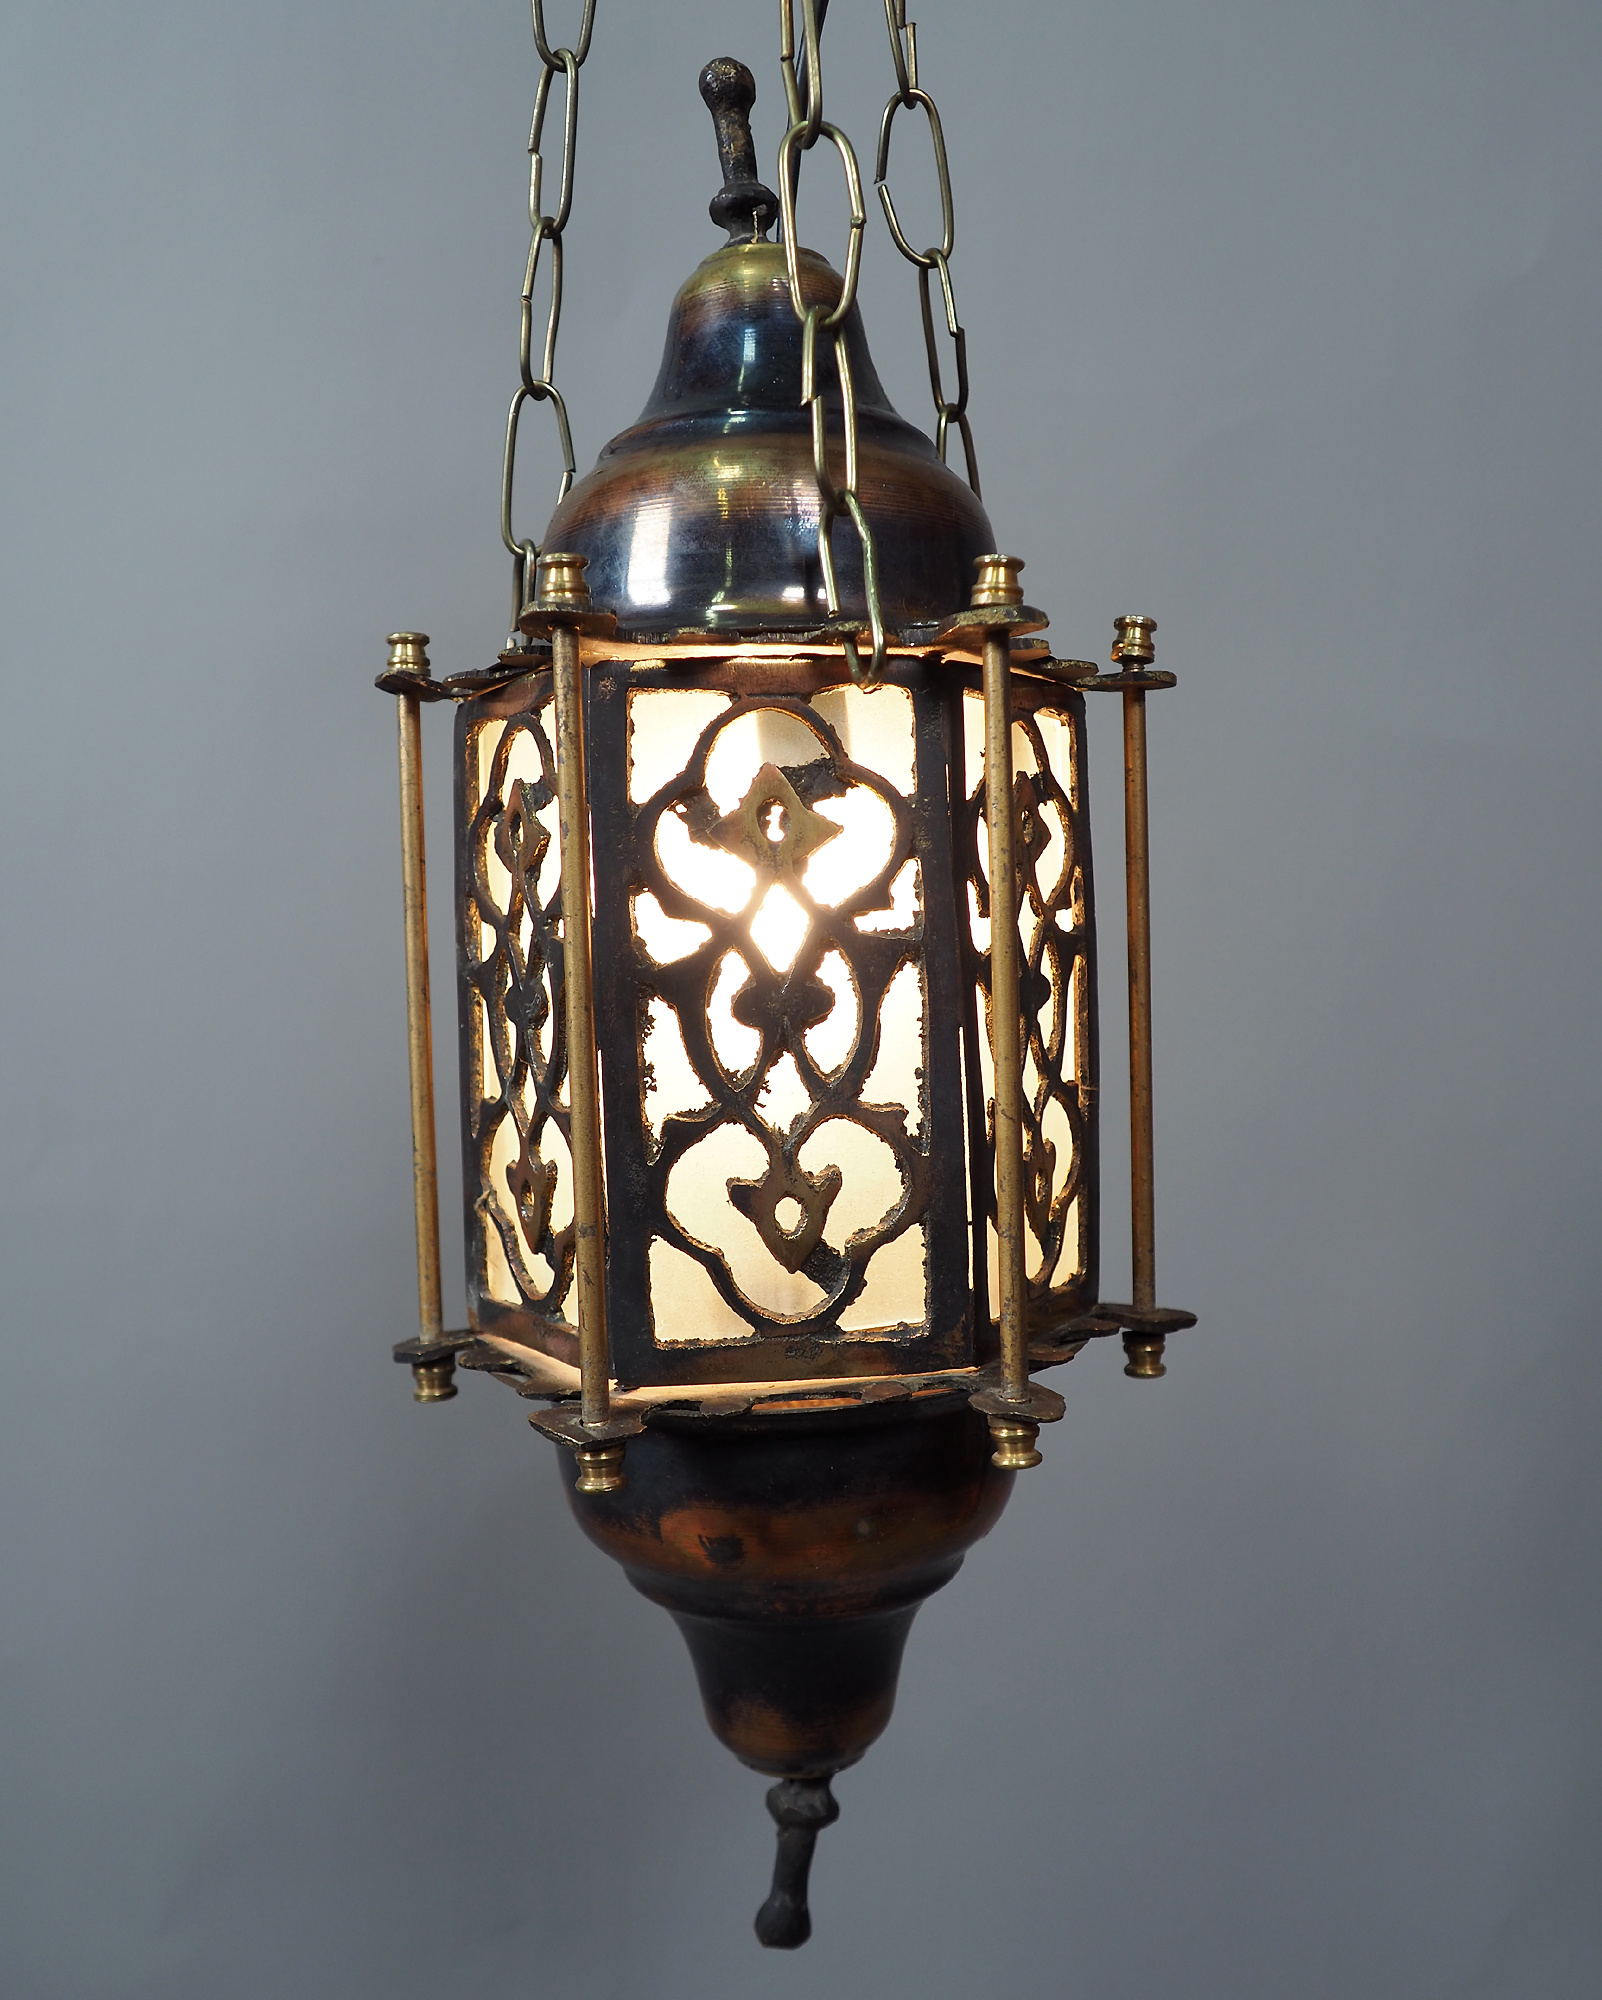 Egyptian Morocco Middle Eastern / Islamic Brass Hanging Mosque Lamp  Ceiling lamp from Afghanistan 21/2